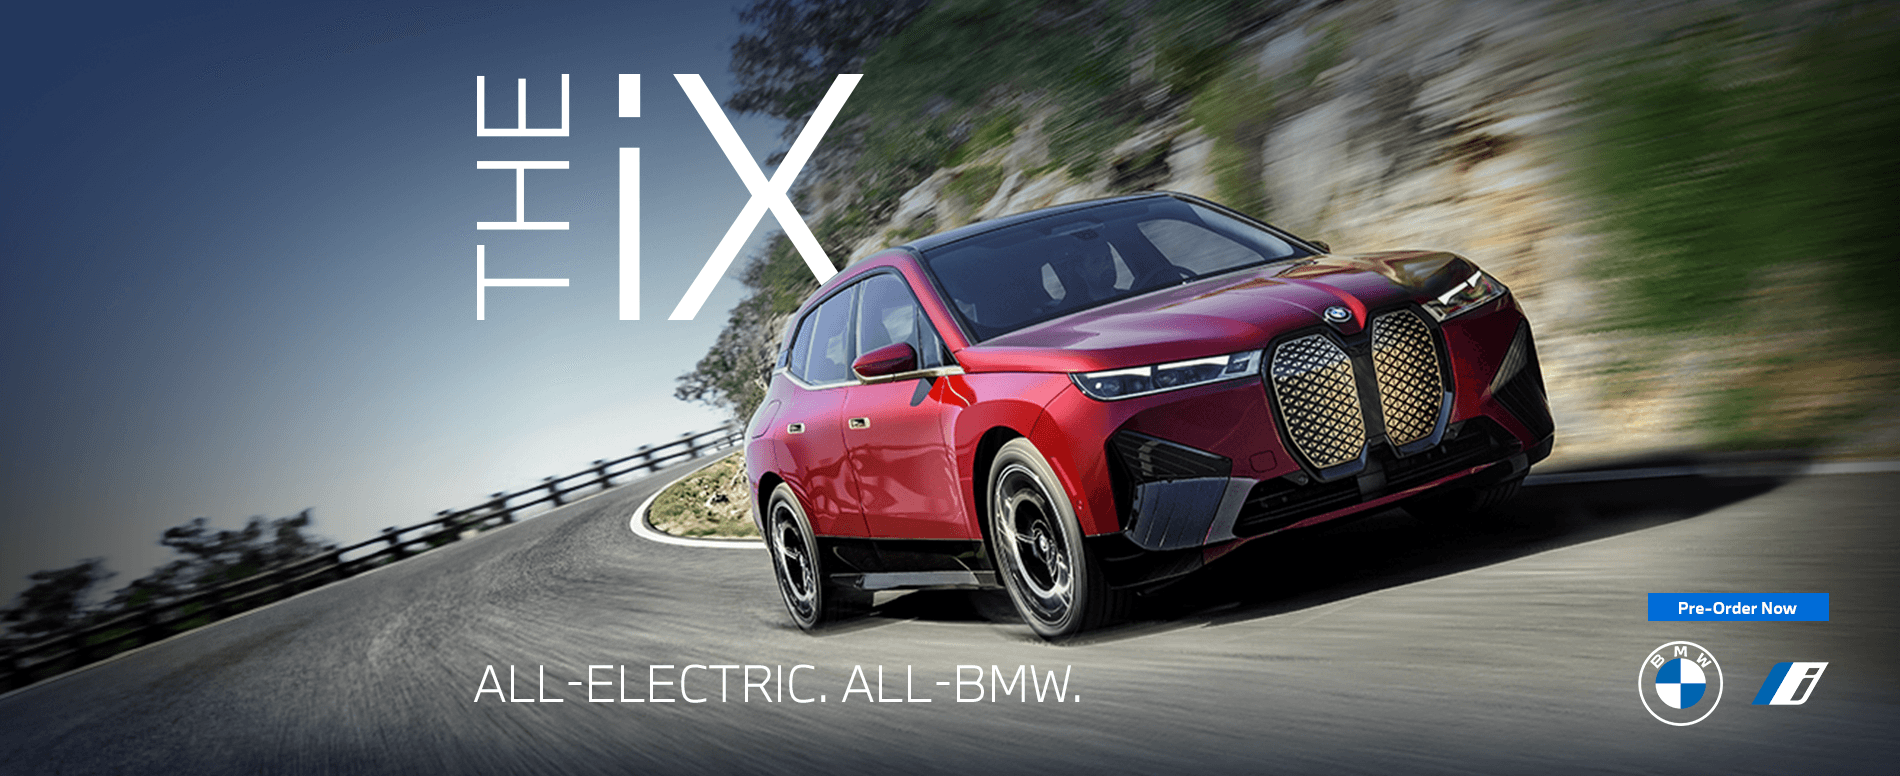 THE IX ALL ELECTRIC. ALL BMW. PRE ORDER NOW